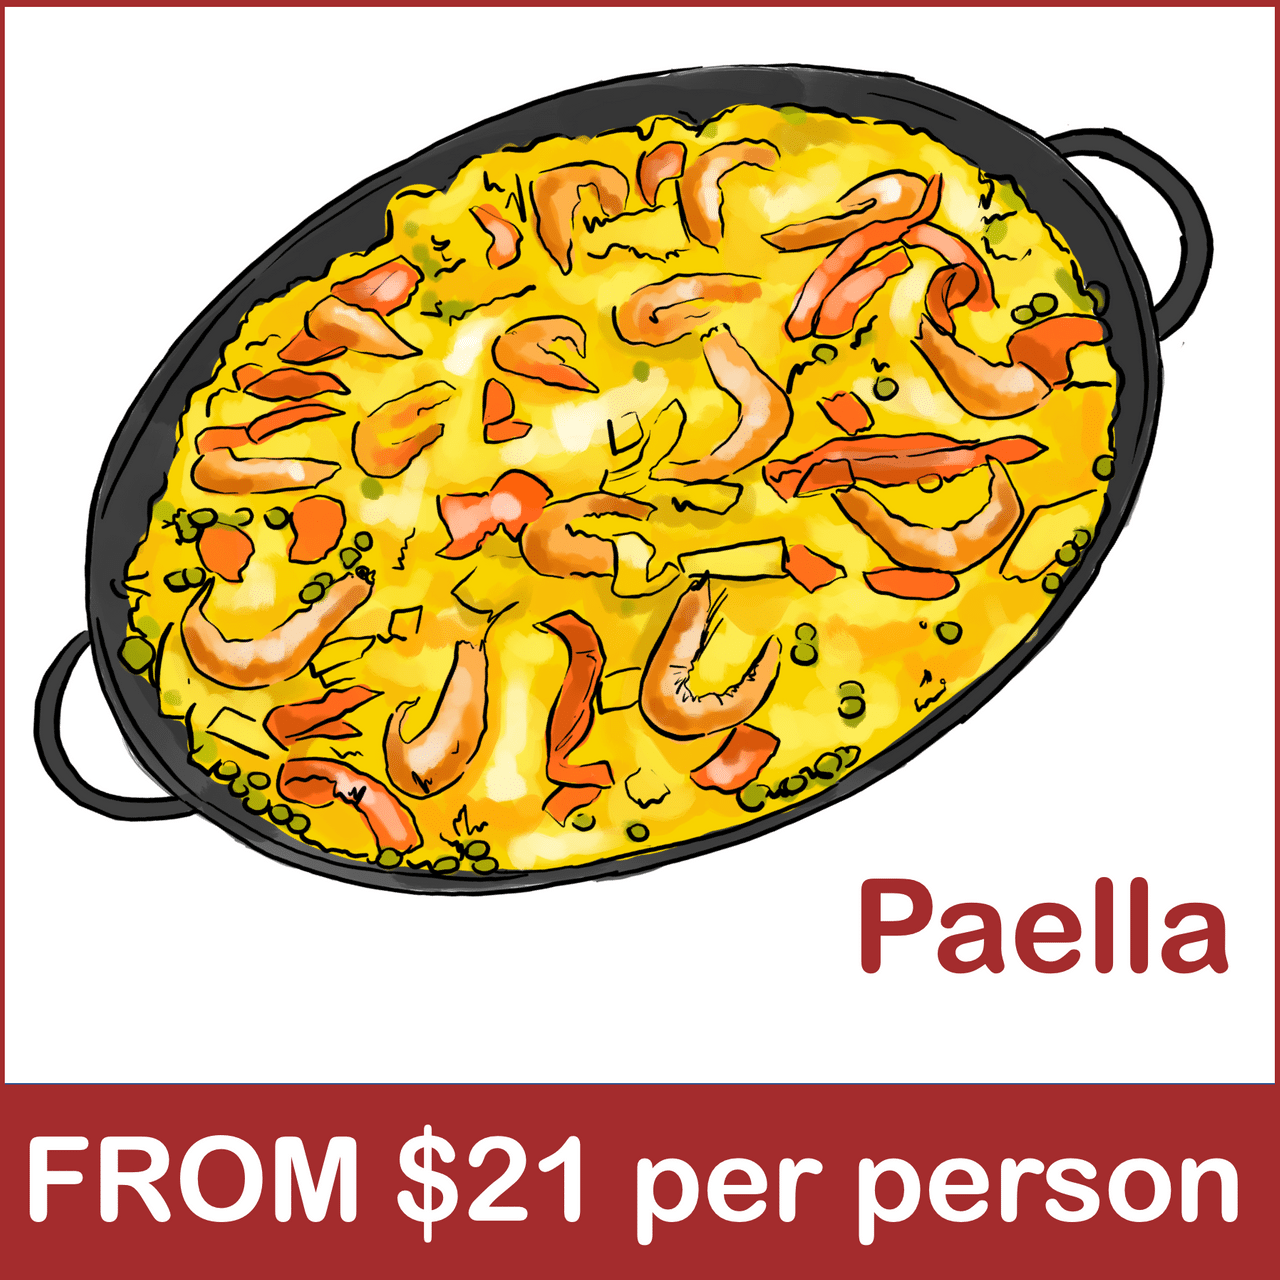 paella-package.png